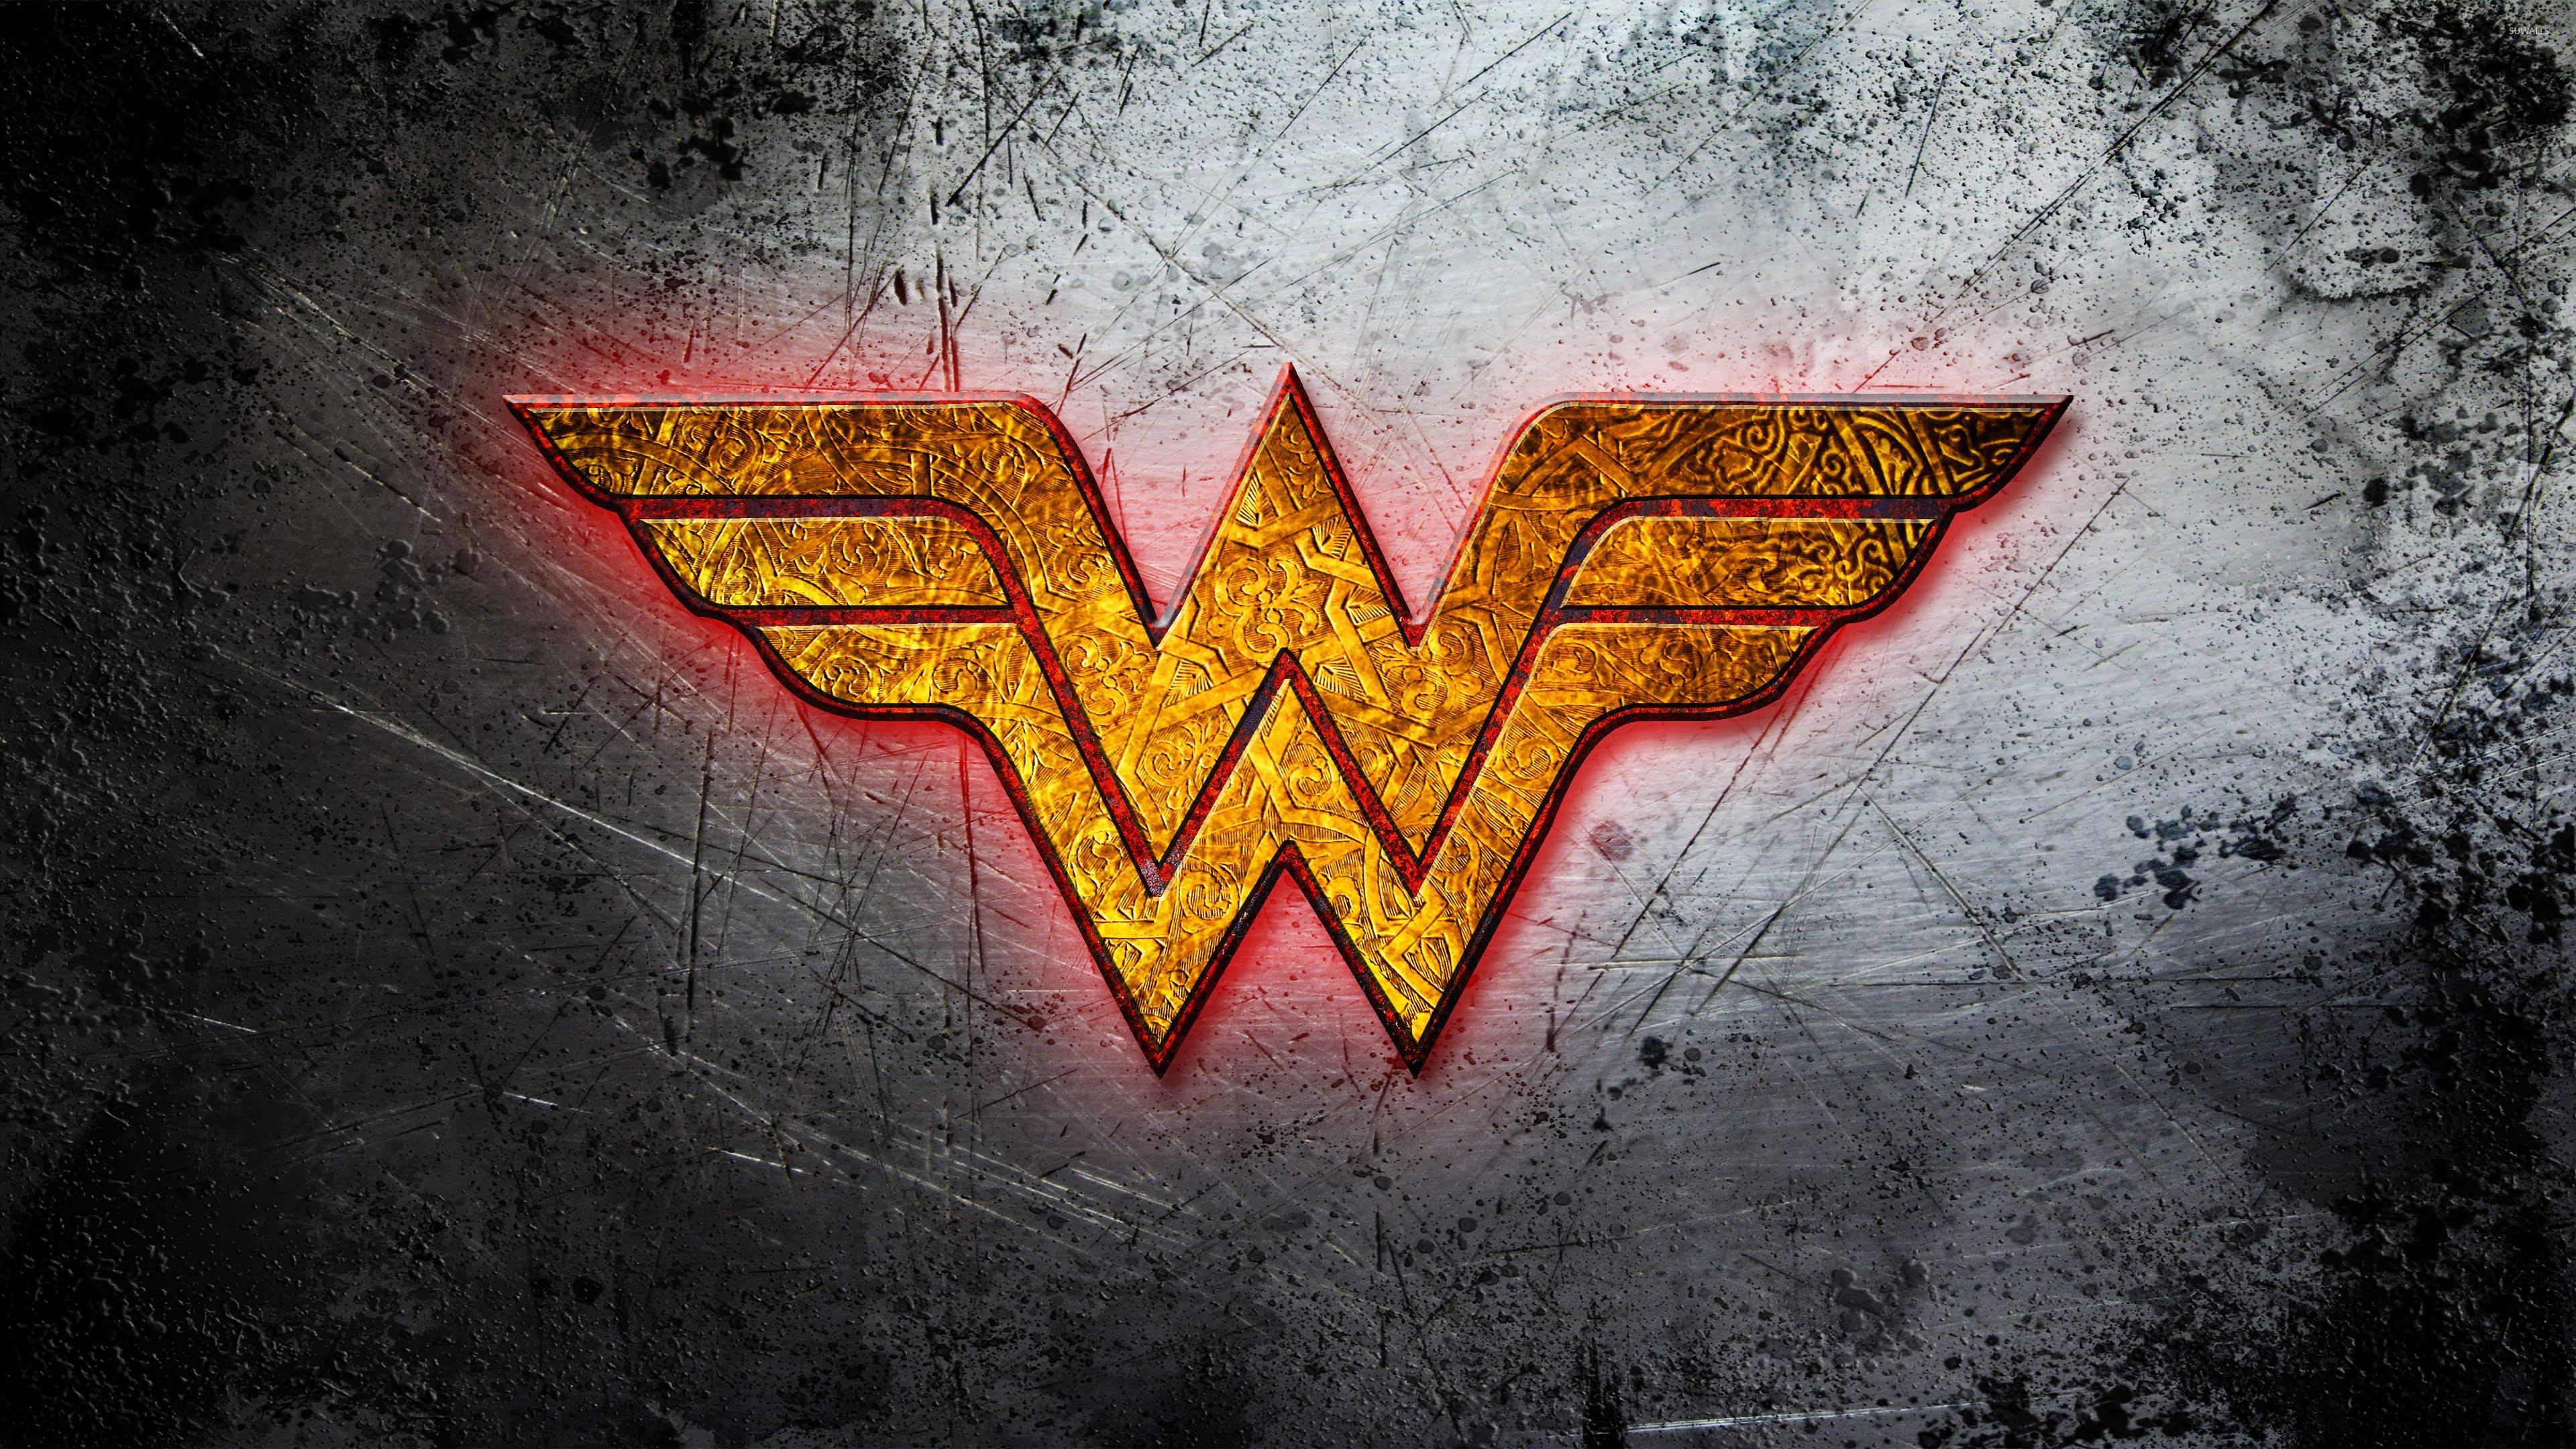 wonder woman logo dc comics cute latest hd image wallpaper